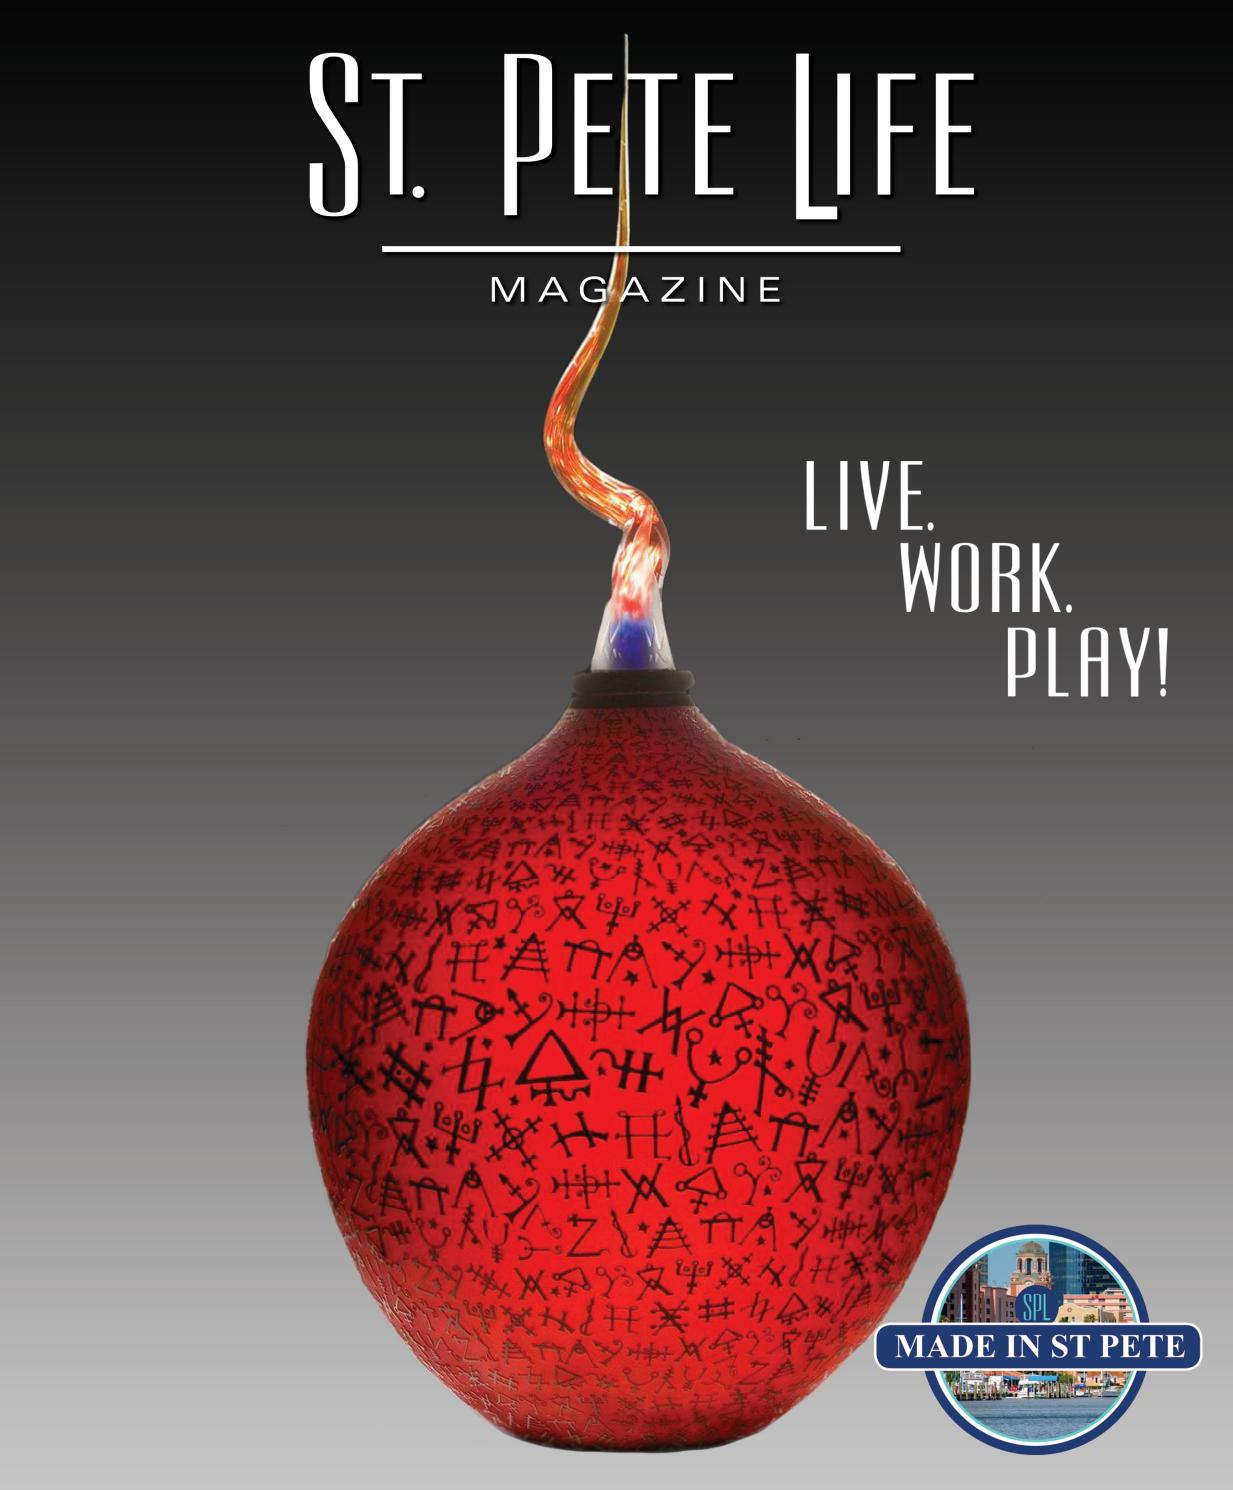 76233cead9 St. Pete Life Magazine May/June 2018 by stpetelifemag - issuu